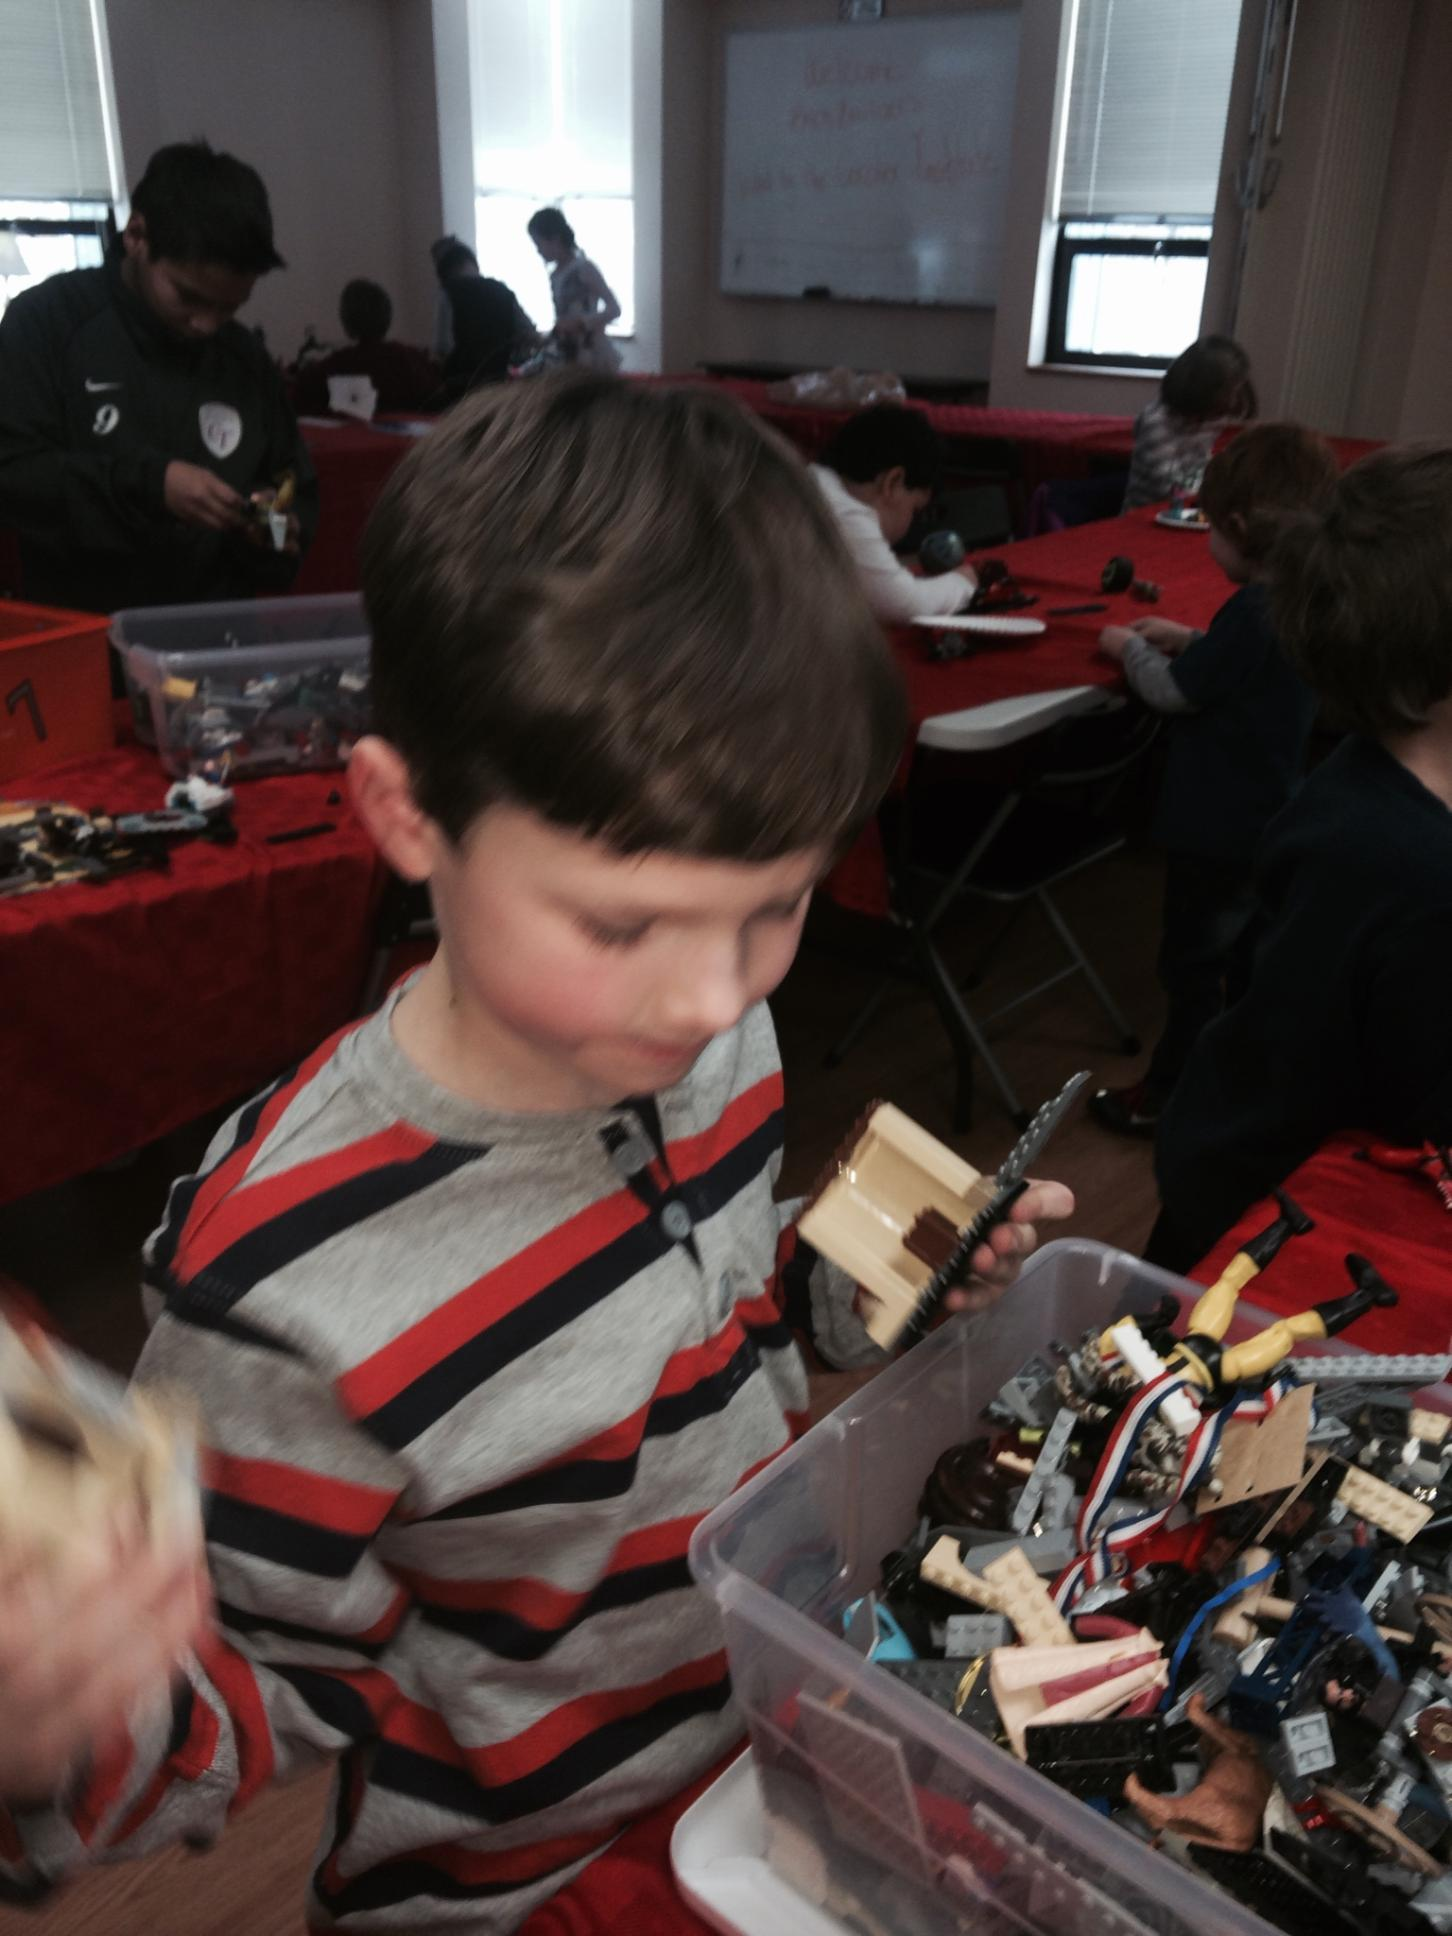 Thomas Cordier of Glastonbury carefully selects which Legos to build with.